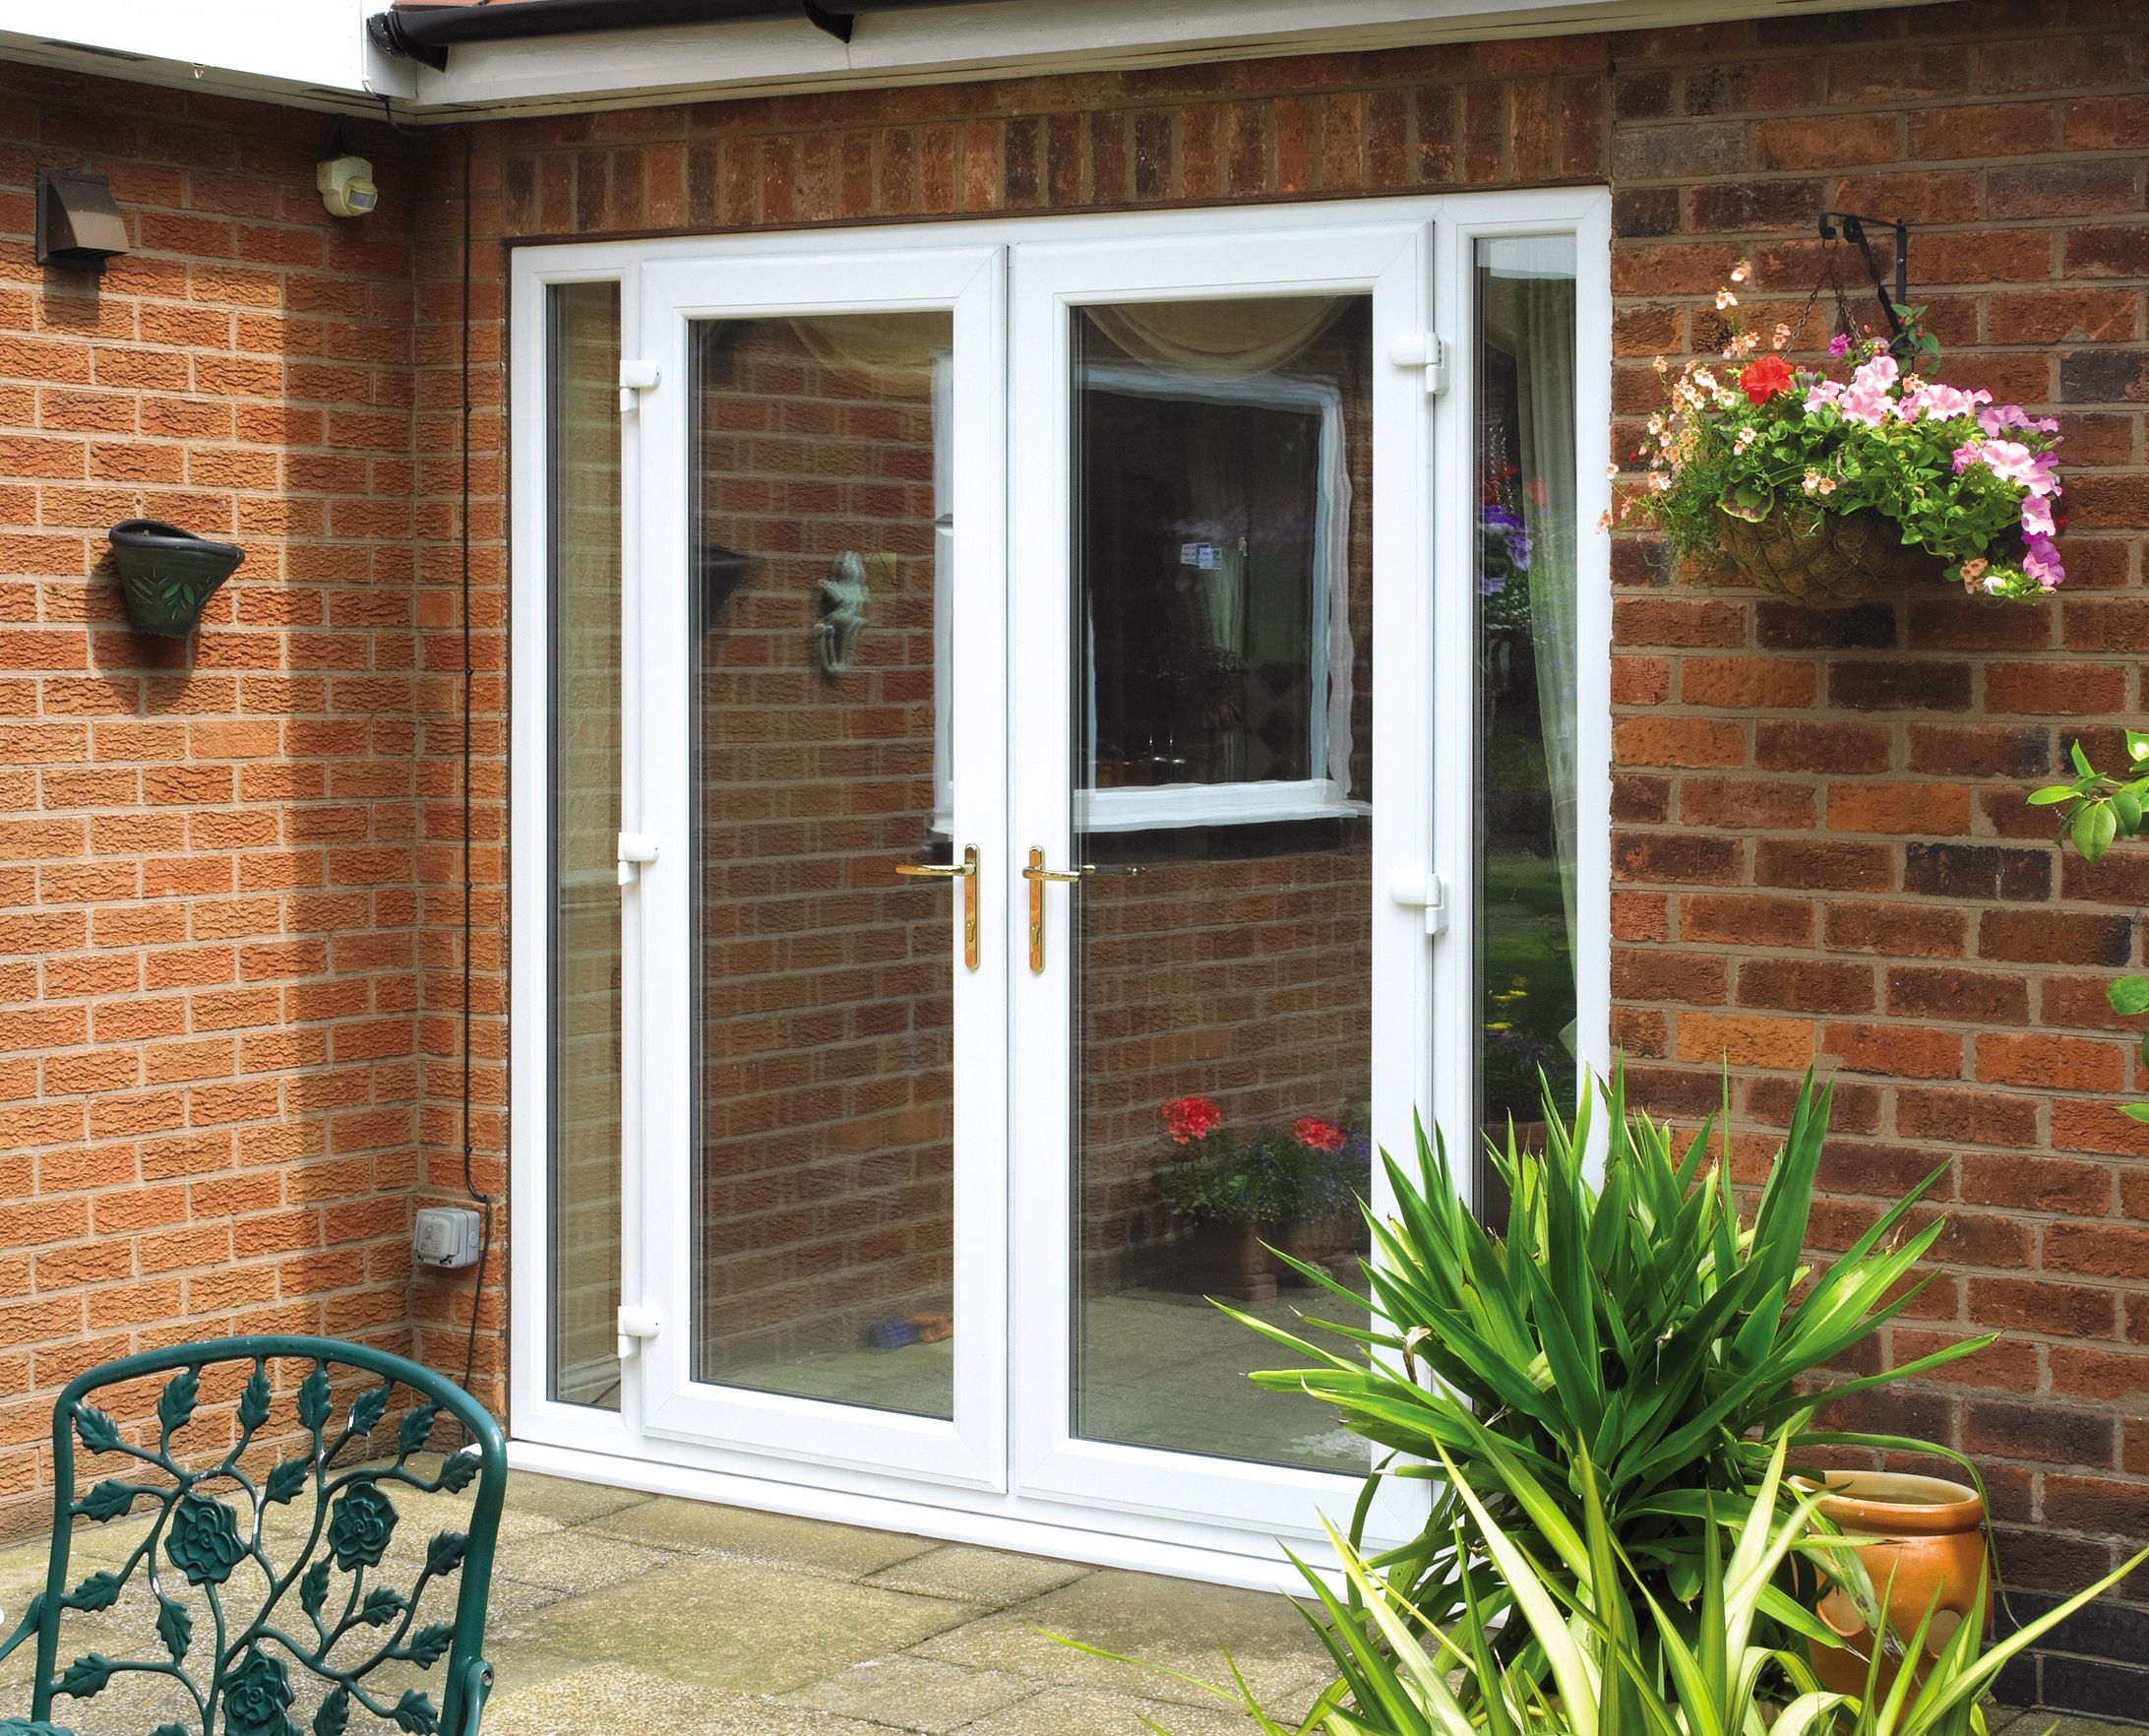 French Doors French Doors Are A Pair Of Outward Opening Doors The